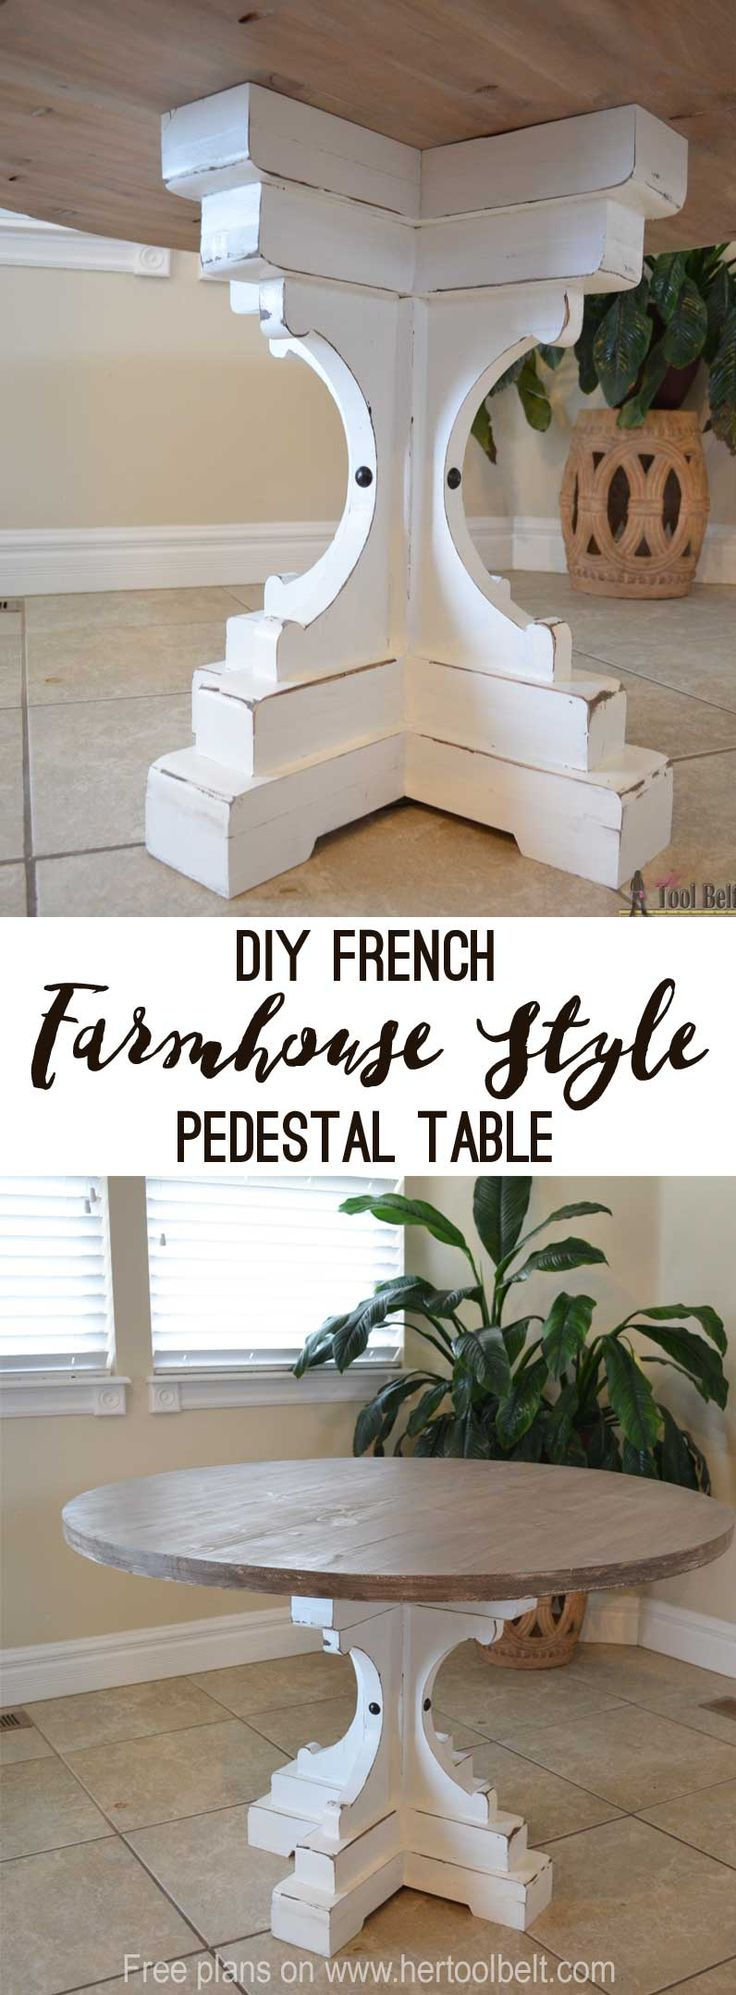 432 best images about dining room tutorials on pinterest for Dining room table 2x4